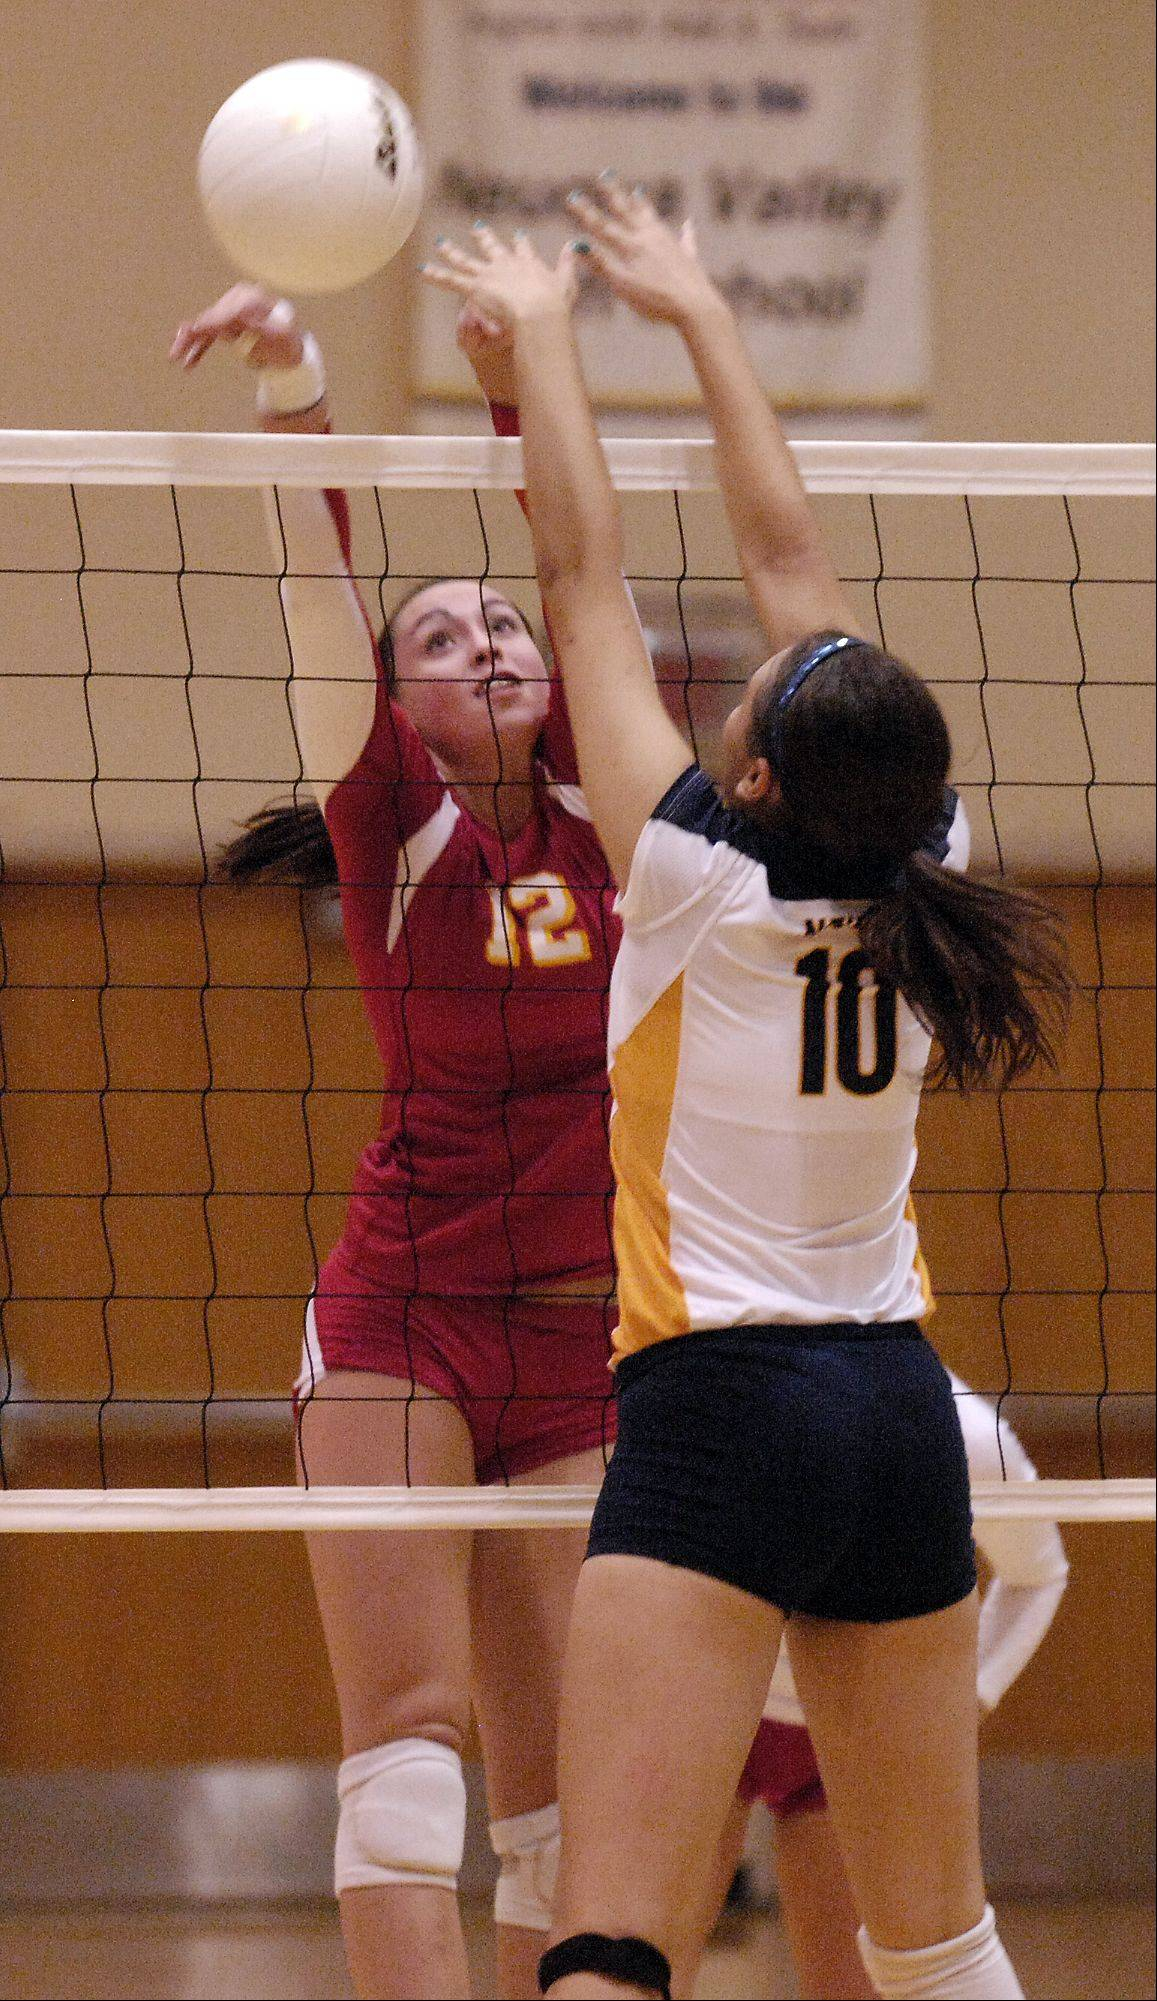 Shea Thayer of Batavia hits the ball past Stephanie Vas of Neuqua Valley during girls varsity volleyball in Naperville. Batavia won 2-0.